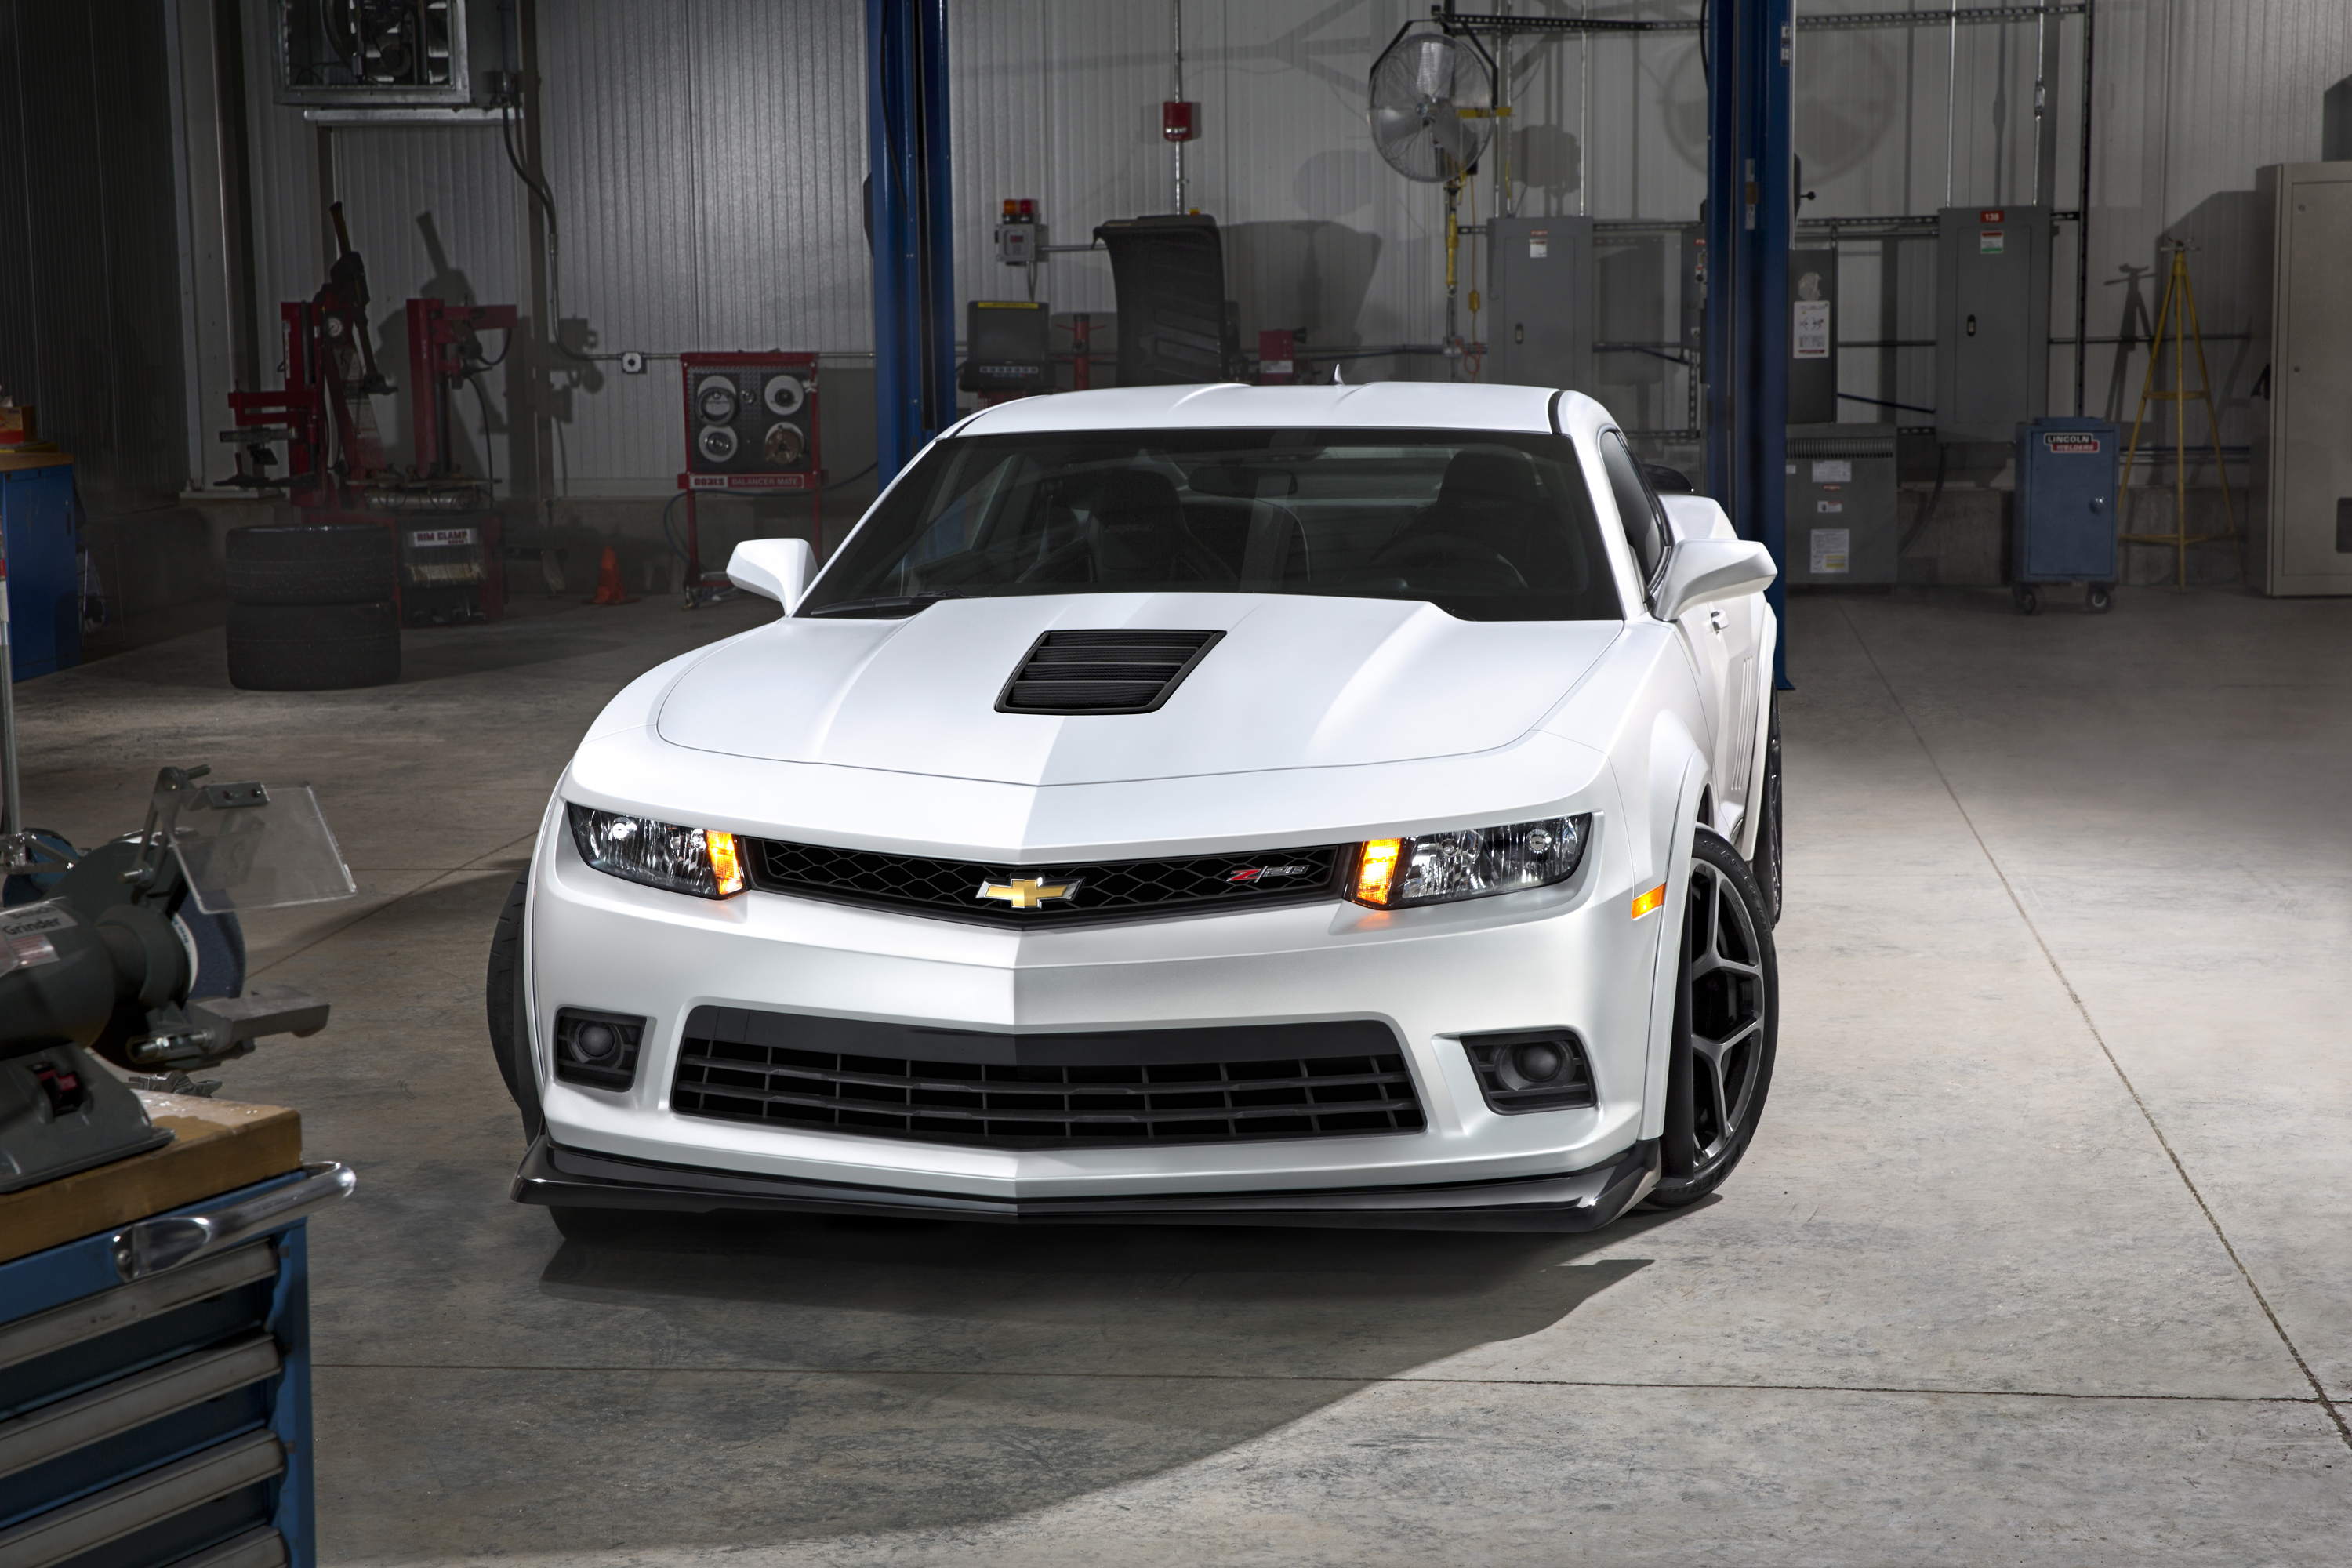 Worksheet. 2014 Camaro Z28 the Most Trackcapable Camaro Ever